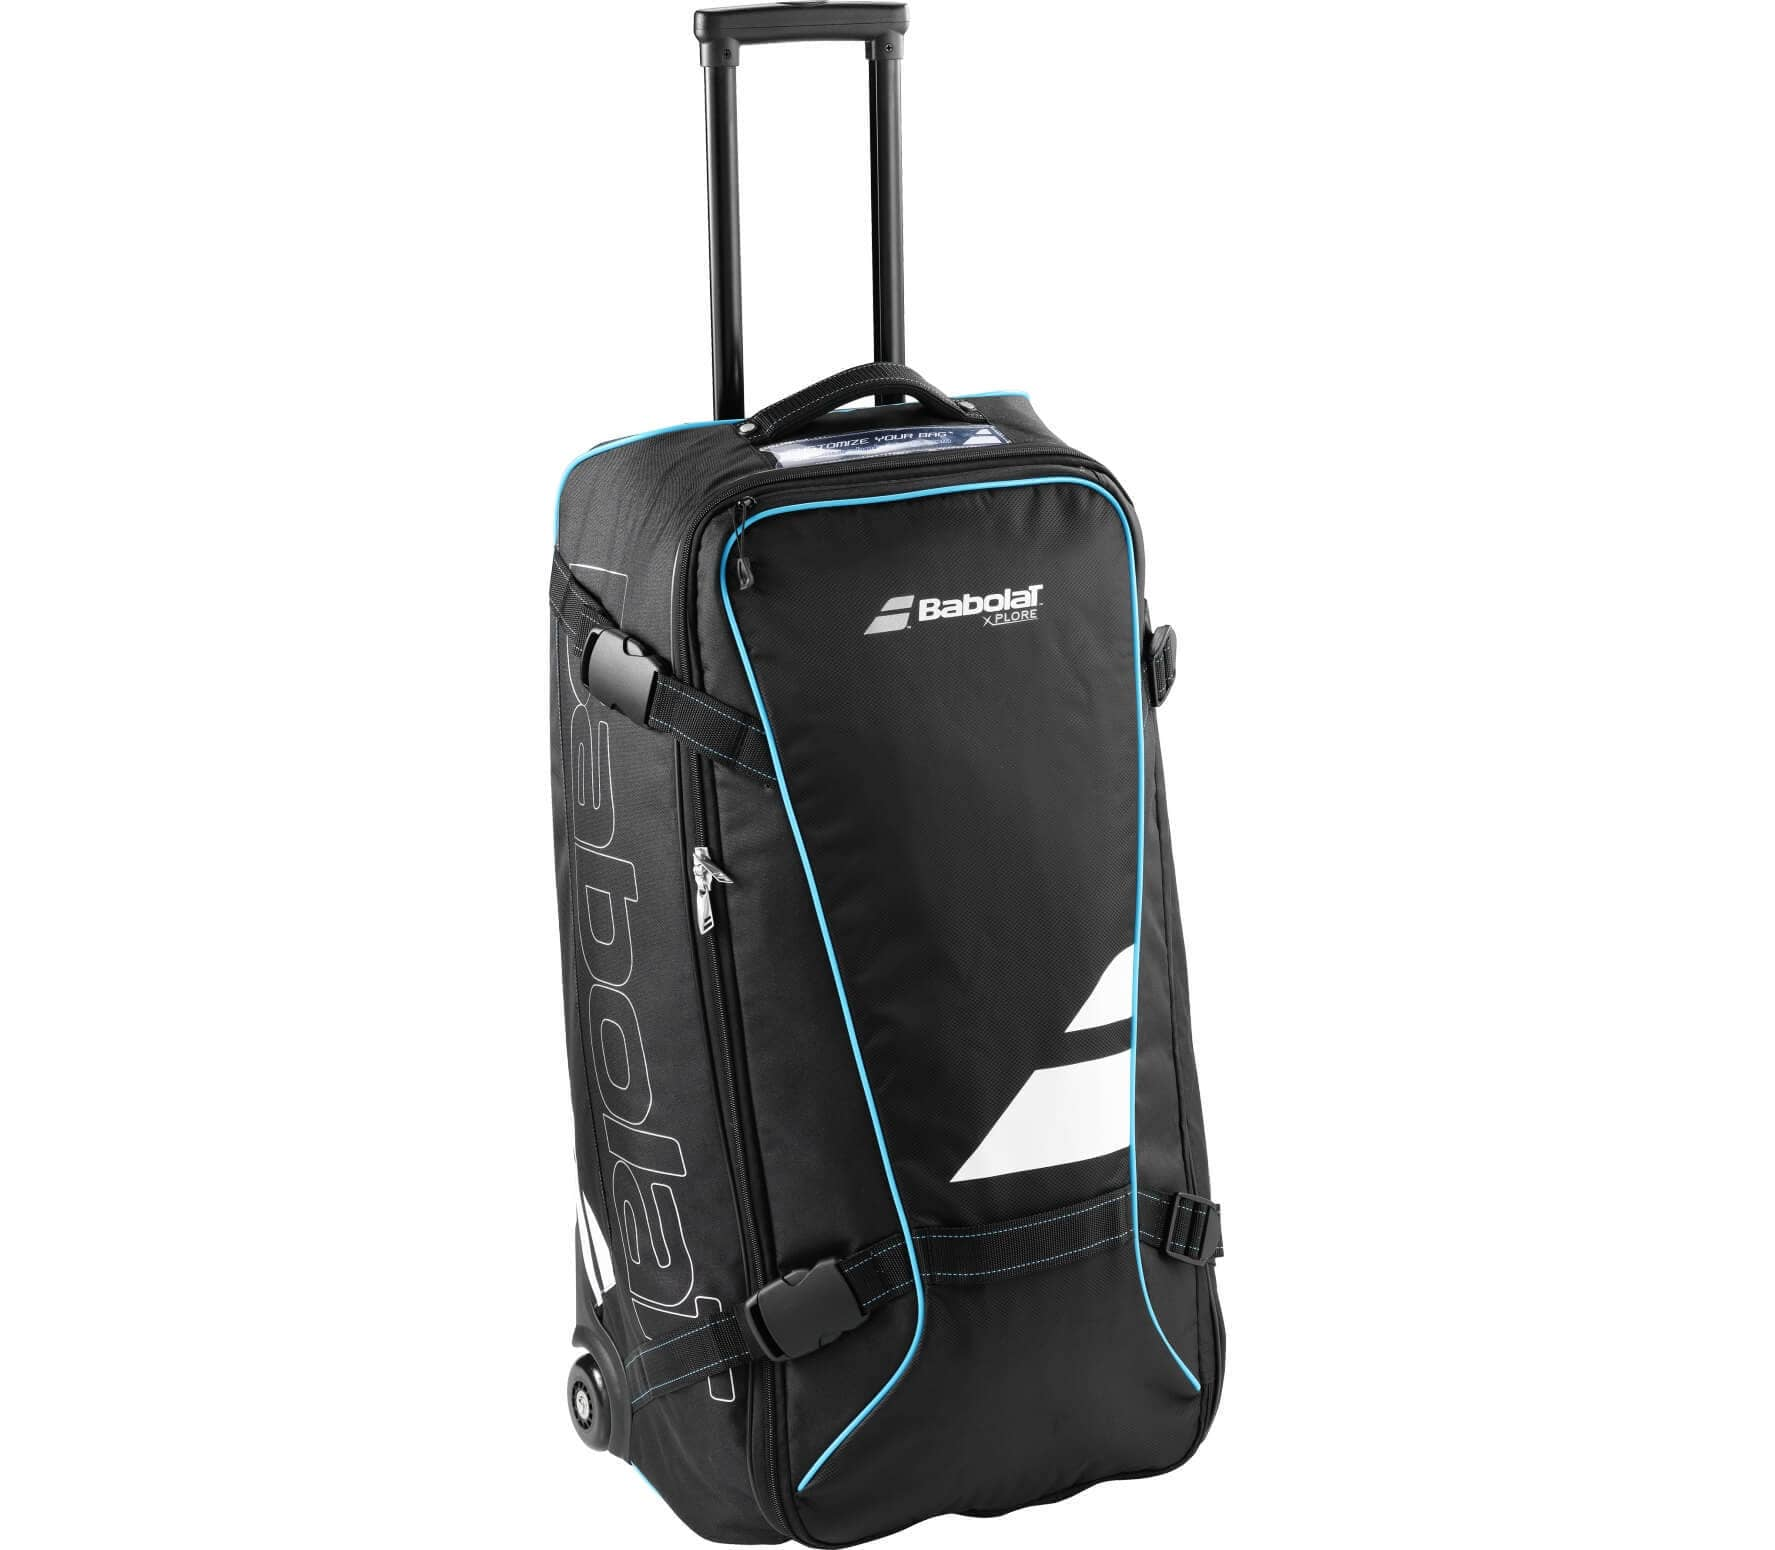 Babolat - Xplore Travel Bag Tennistasche (schwarz/blau)